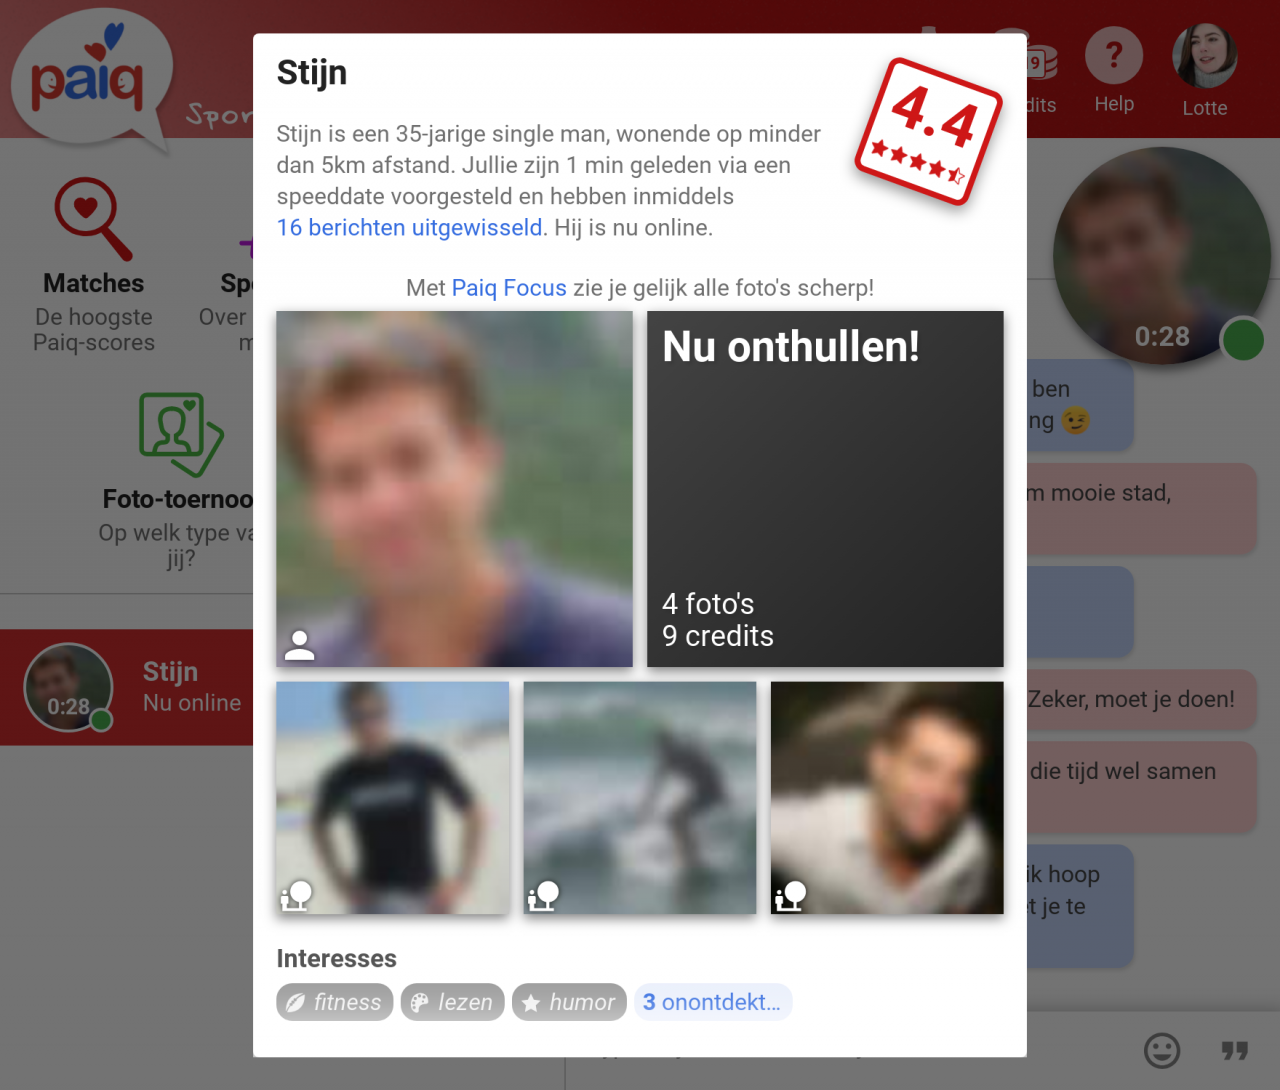 Tips voor messaging op dating sites